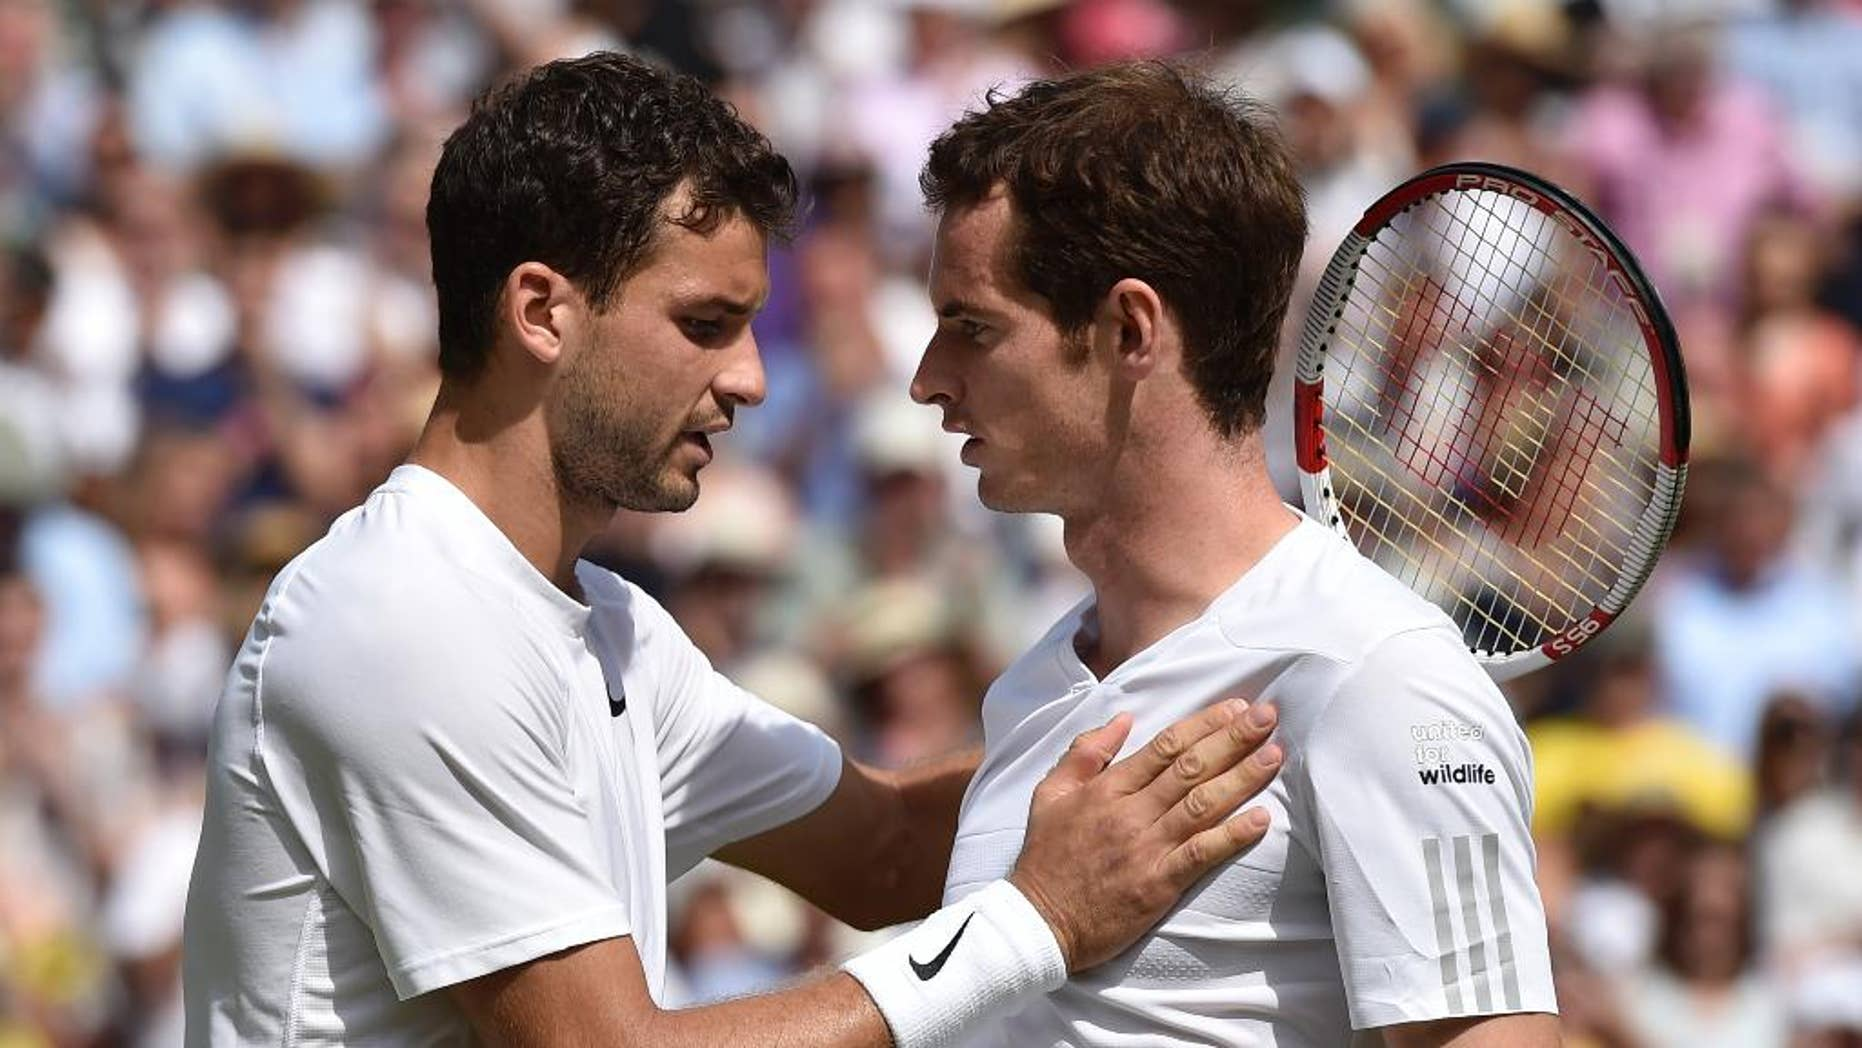 Grigor Dimitrov of Bulgaria, left, is congratulated by defending champion Andy Murray of Britain after winning their men's singles quarterfinal match at the All England Lawn Tennis Championships in Wimbledon, London, Wednesday July 2, 2014. (AP Photo/Toby Melville, Pool)